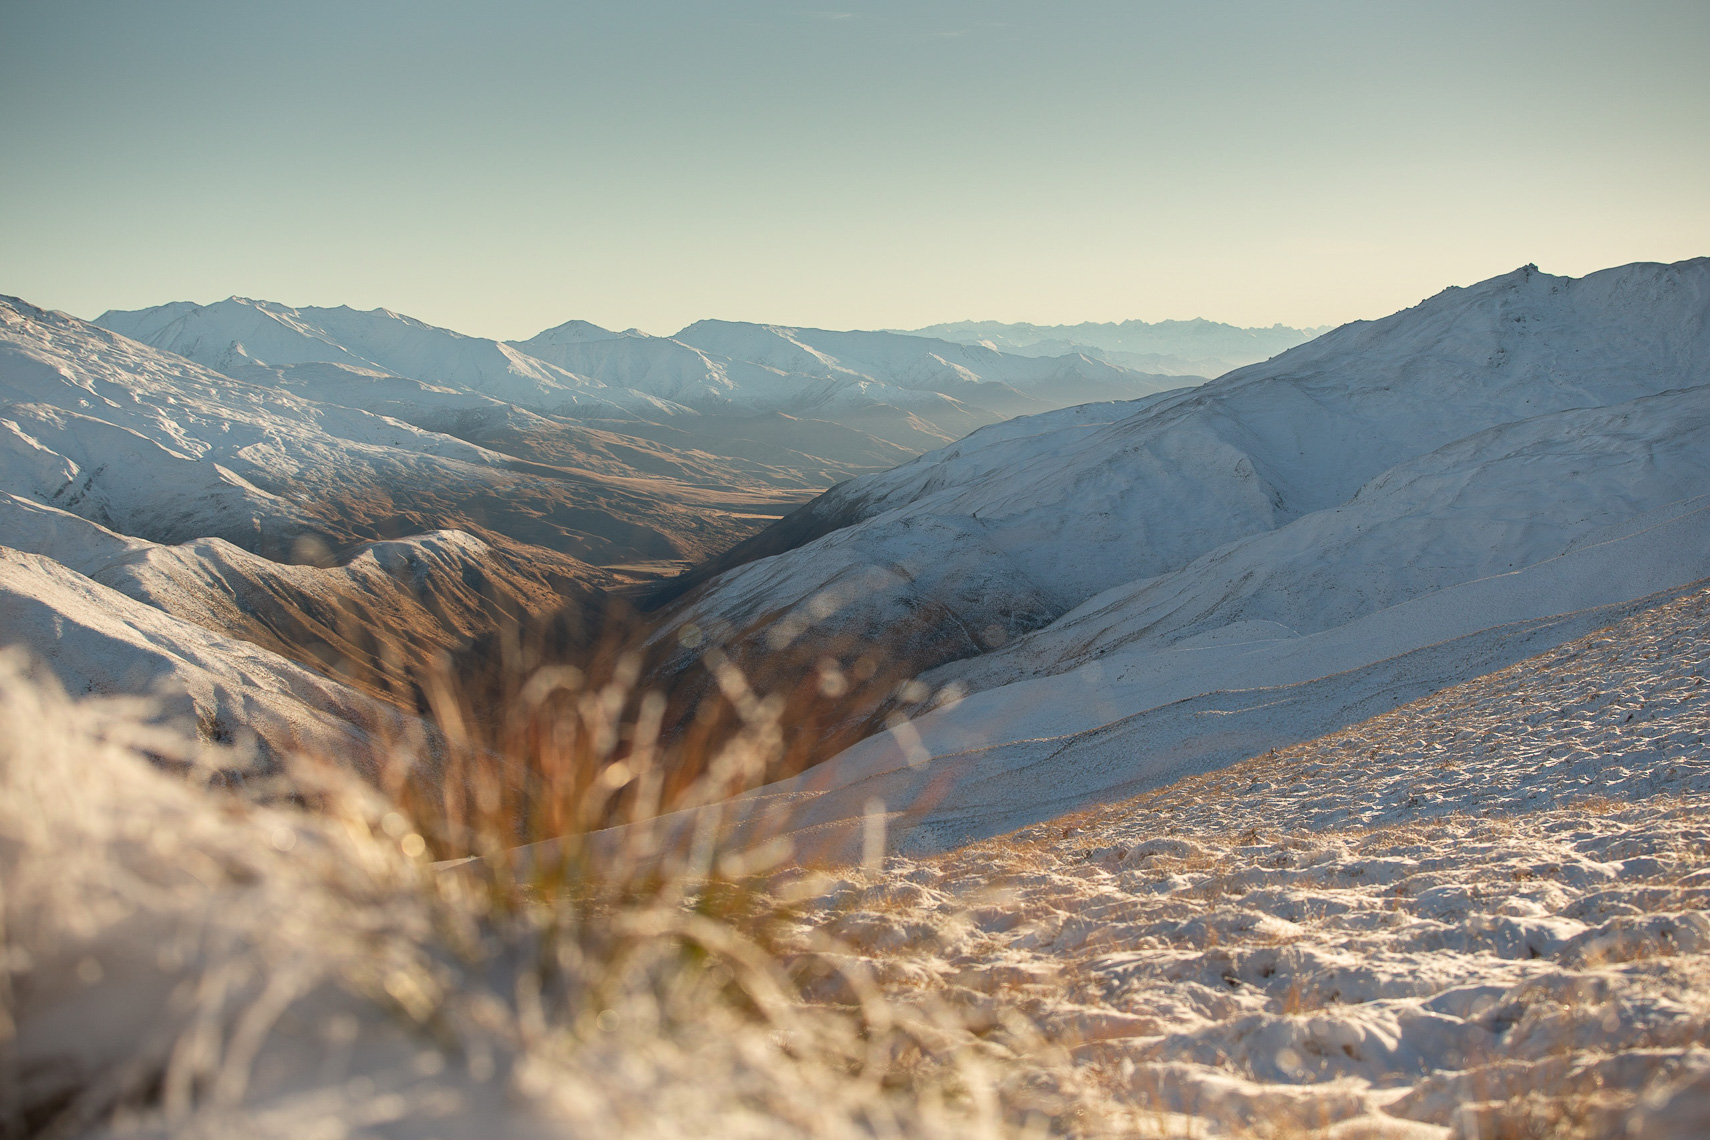 Snow on red tussock in Cardrona Valley by Paul Green Photographer